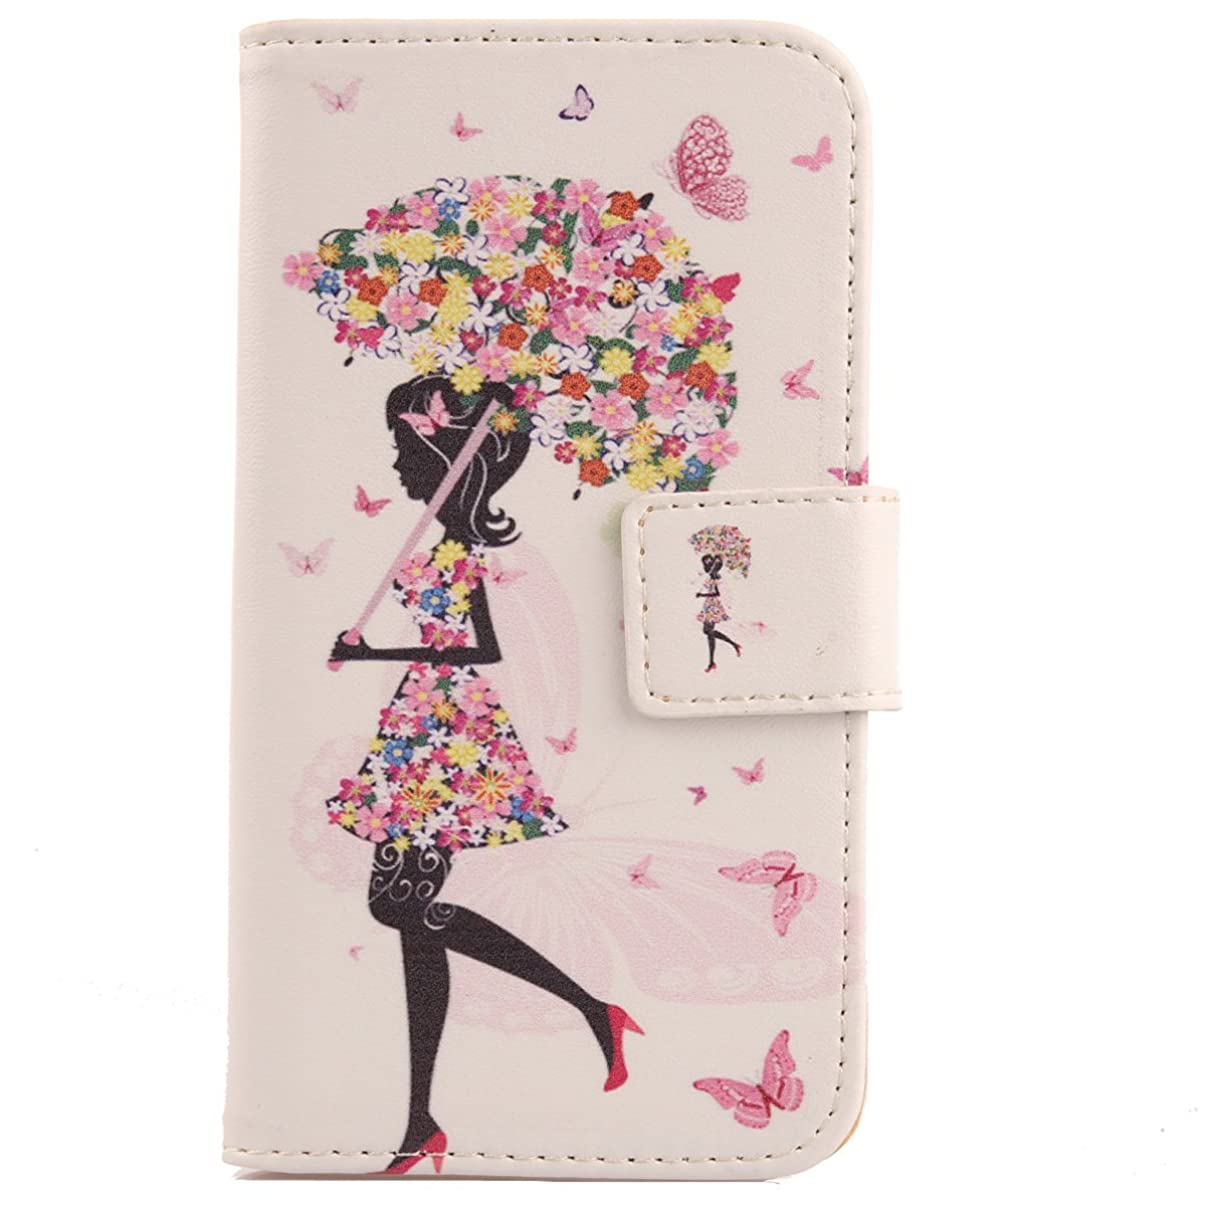 Lankashi Pattern Wallet Design Flip PU Leather Cover Skin Protection Case for Hisense Infinity F24 5.99